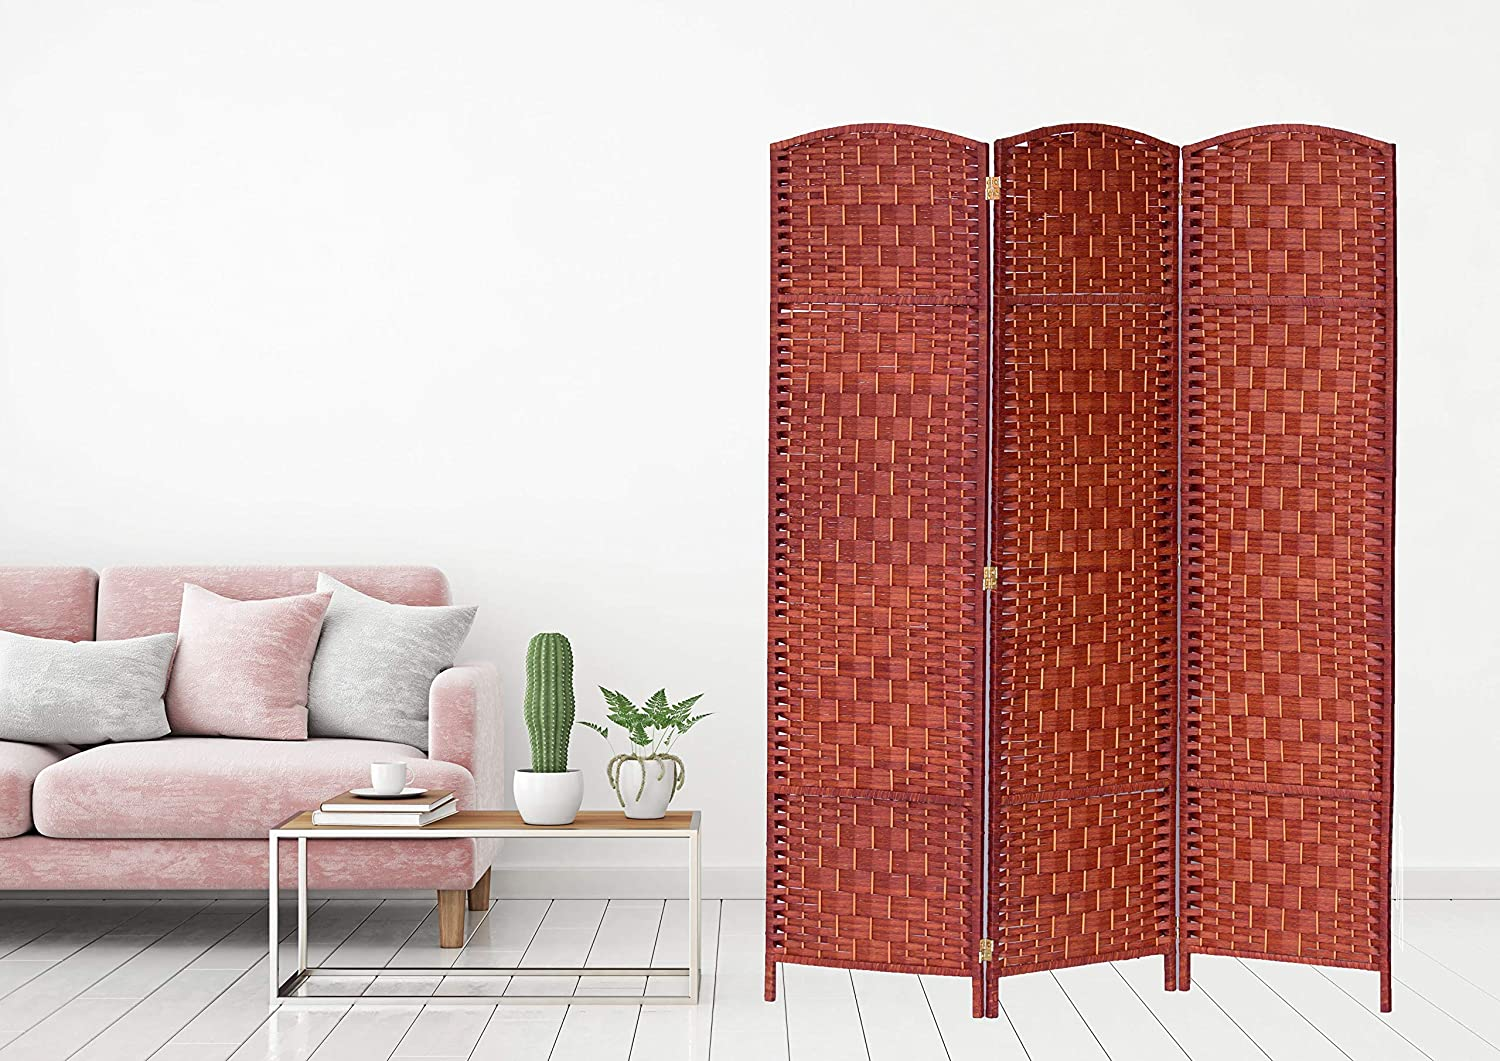 Legacy Decor 3 Panels Room Divider Privacy Partition Screen Bamboo Fiber Weave Honey Color 5.9 ft High X 4.33 ft Wide